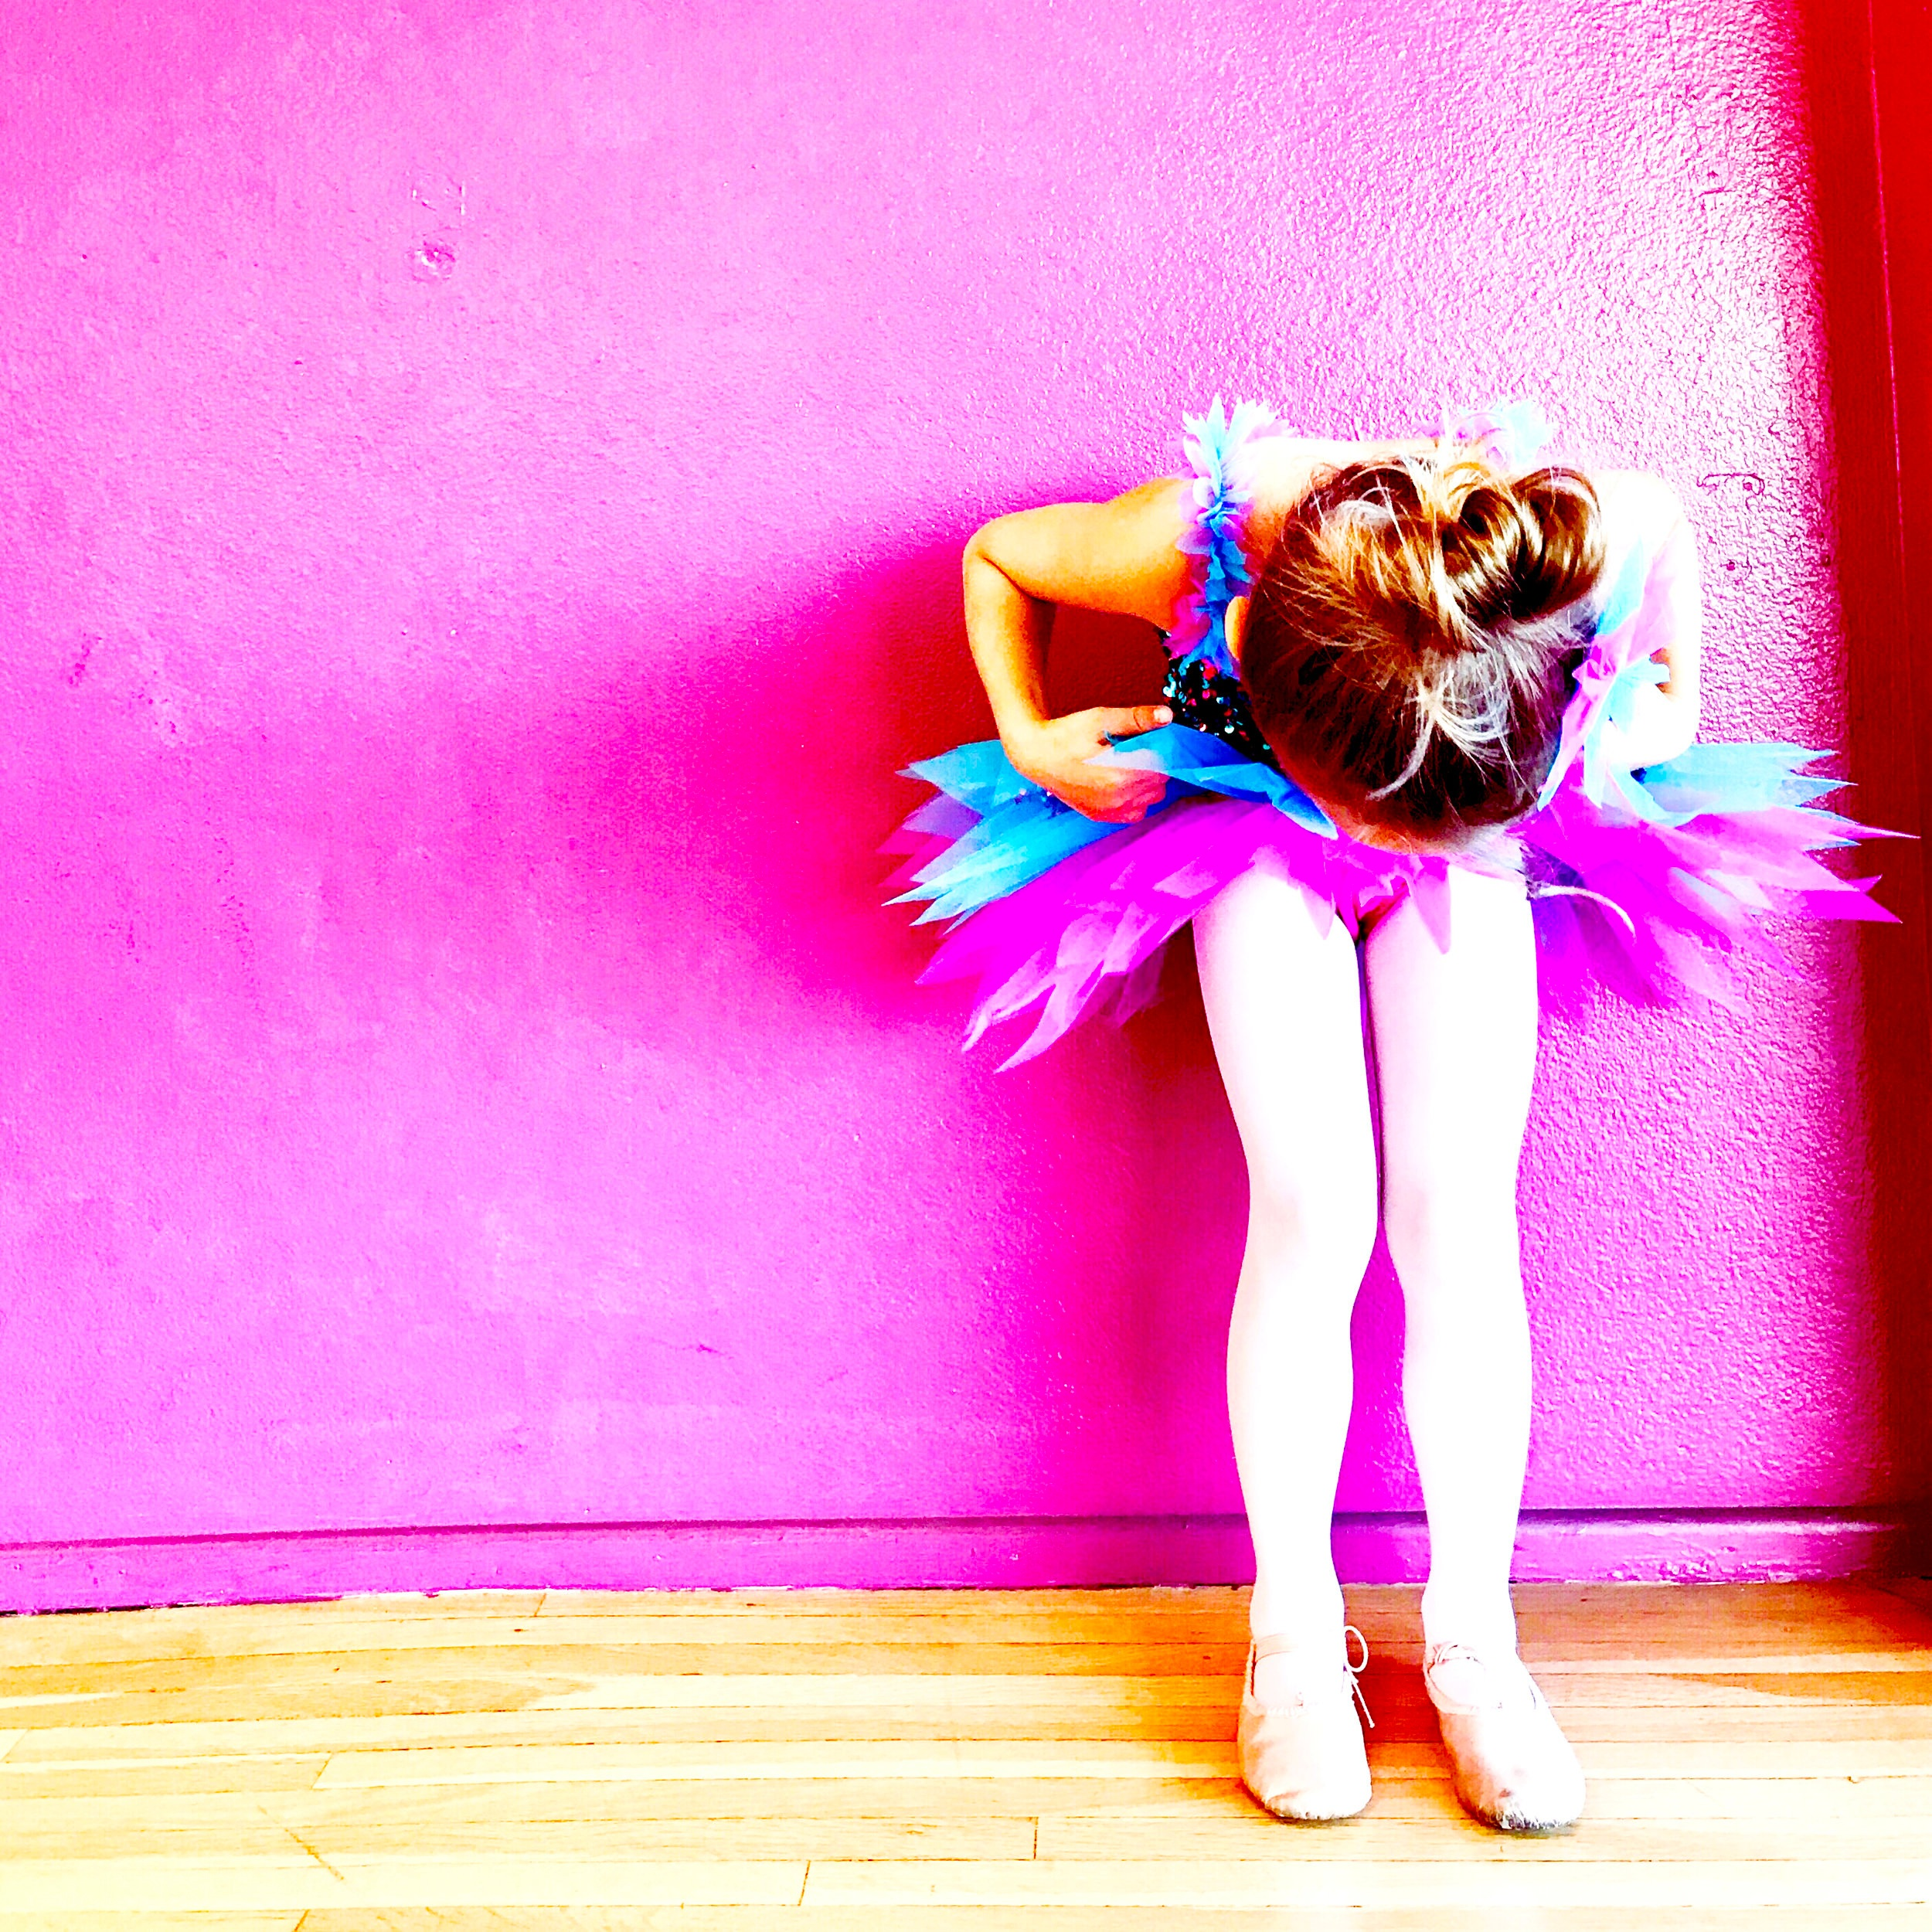 Mini Ballet/Jazz - June 10th - June 28thTuesdays 9:45 to 10:30am ORThursdays 6:00 to 6:45pmJuly 8th - July 26Tuesdays 9:45 to 10:30am ORThursdays 6:00 to 6:45pmThis combo class will cover an introduction to Ballet and Jazz. Dancers will be taken through warm ups, across the floor and barre exercises to music that is captivating as they learn new styles of dance.Price $41